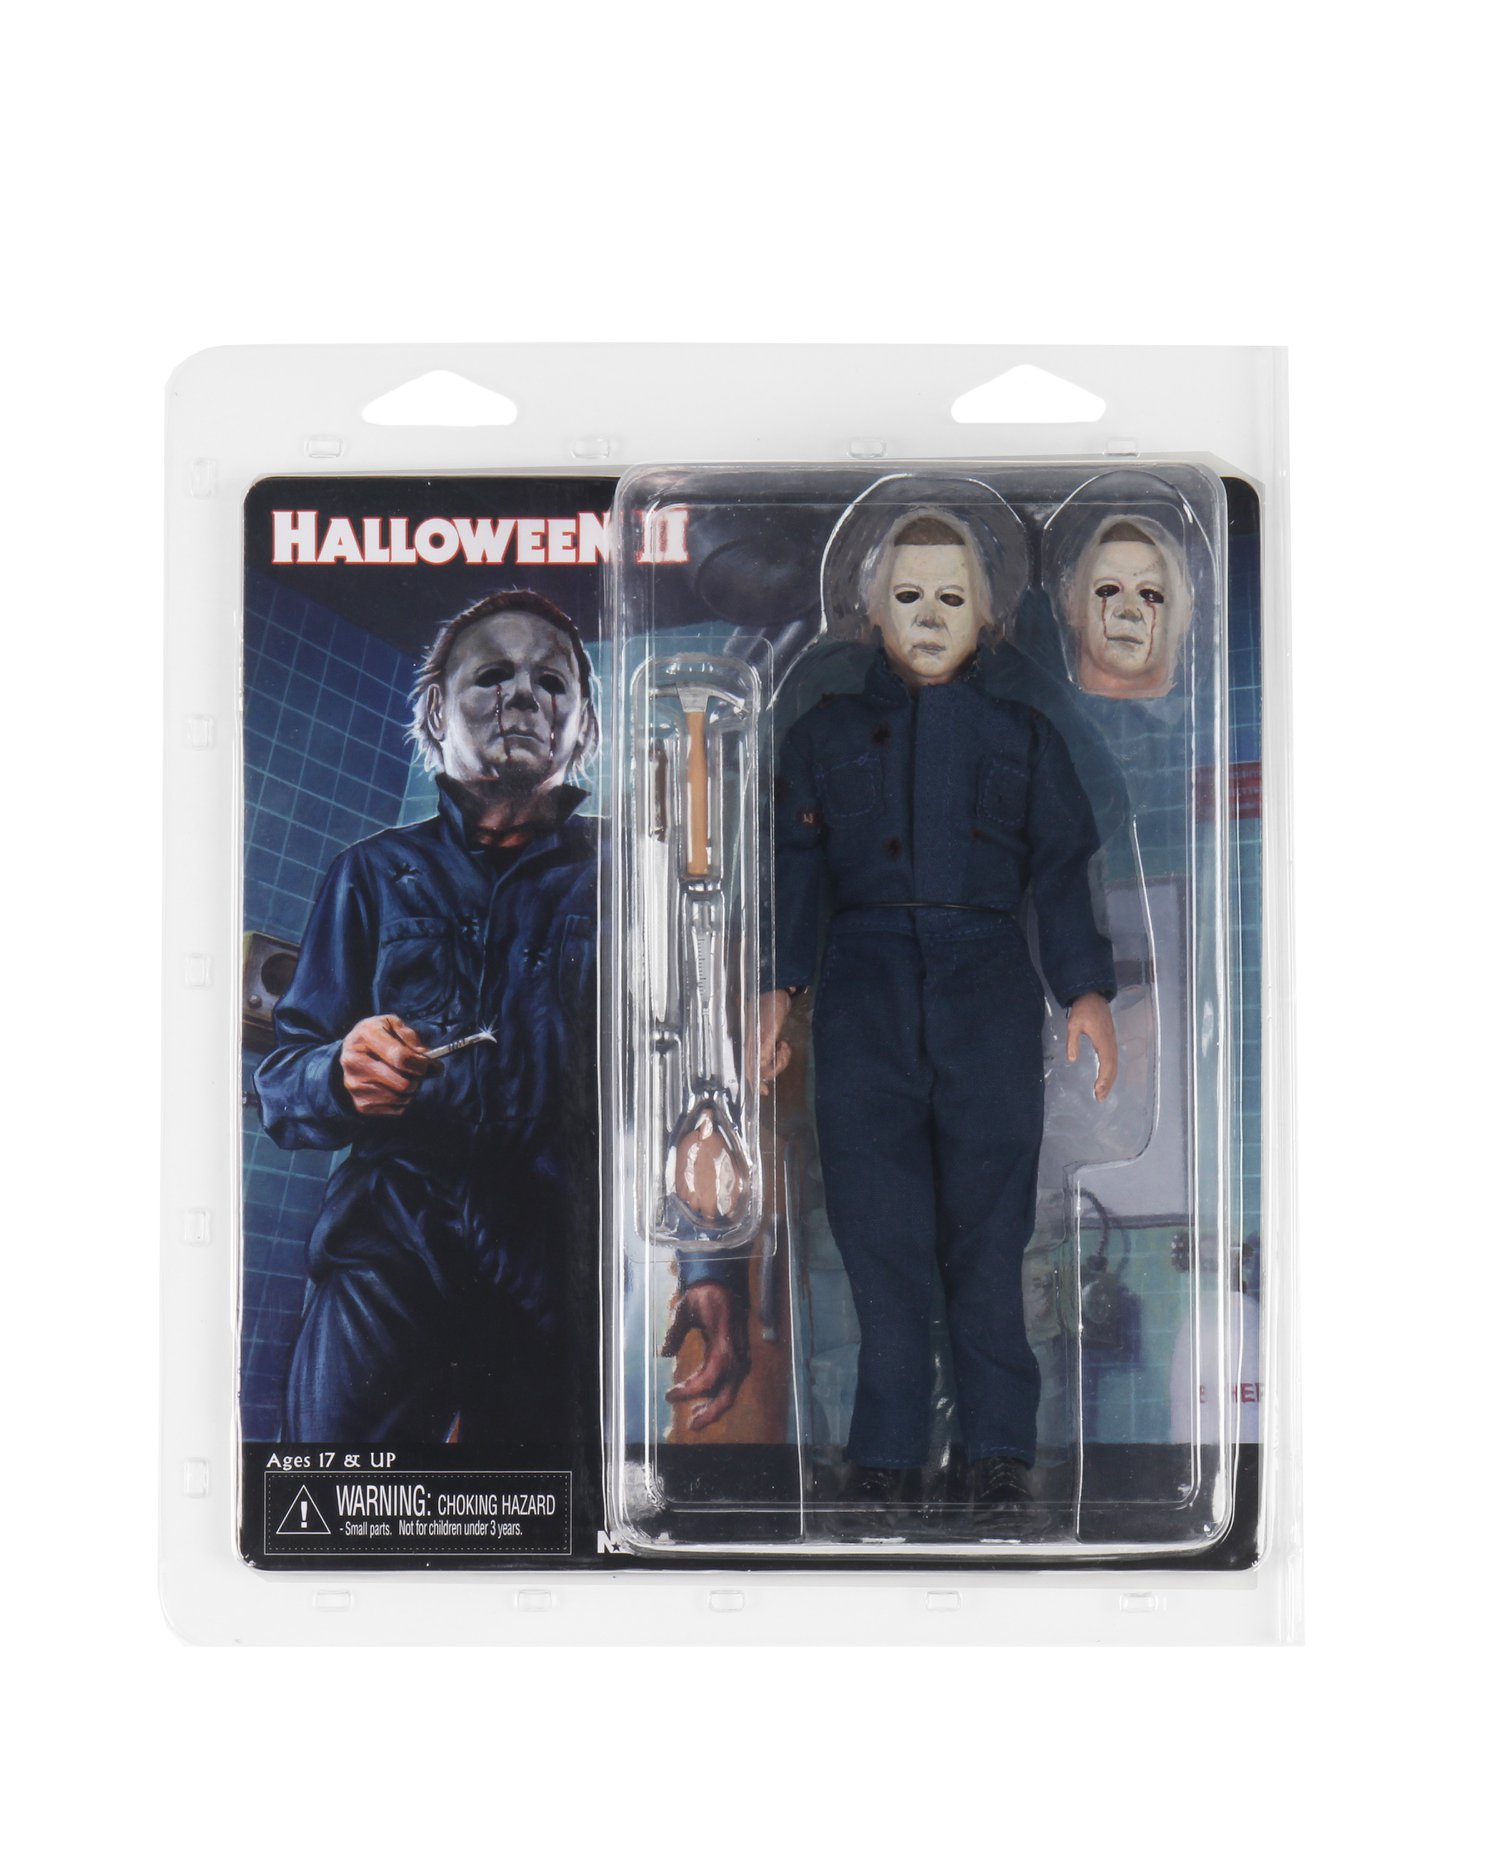 NECA Toys Halloween 2 Michael Myers 8″ Clothed Figure Available Now